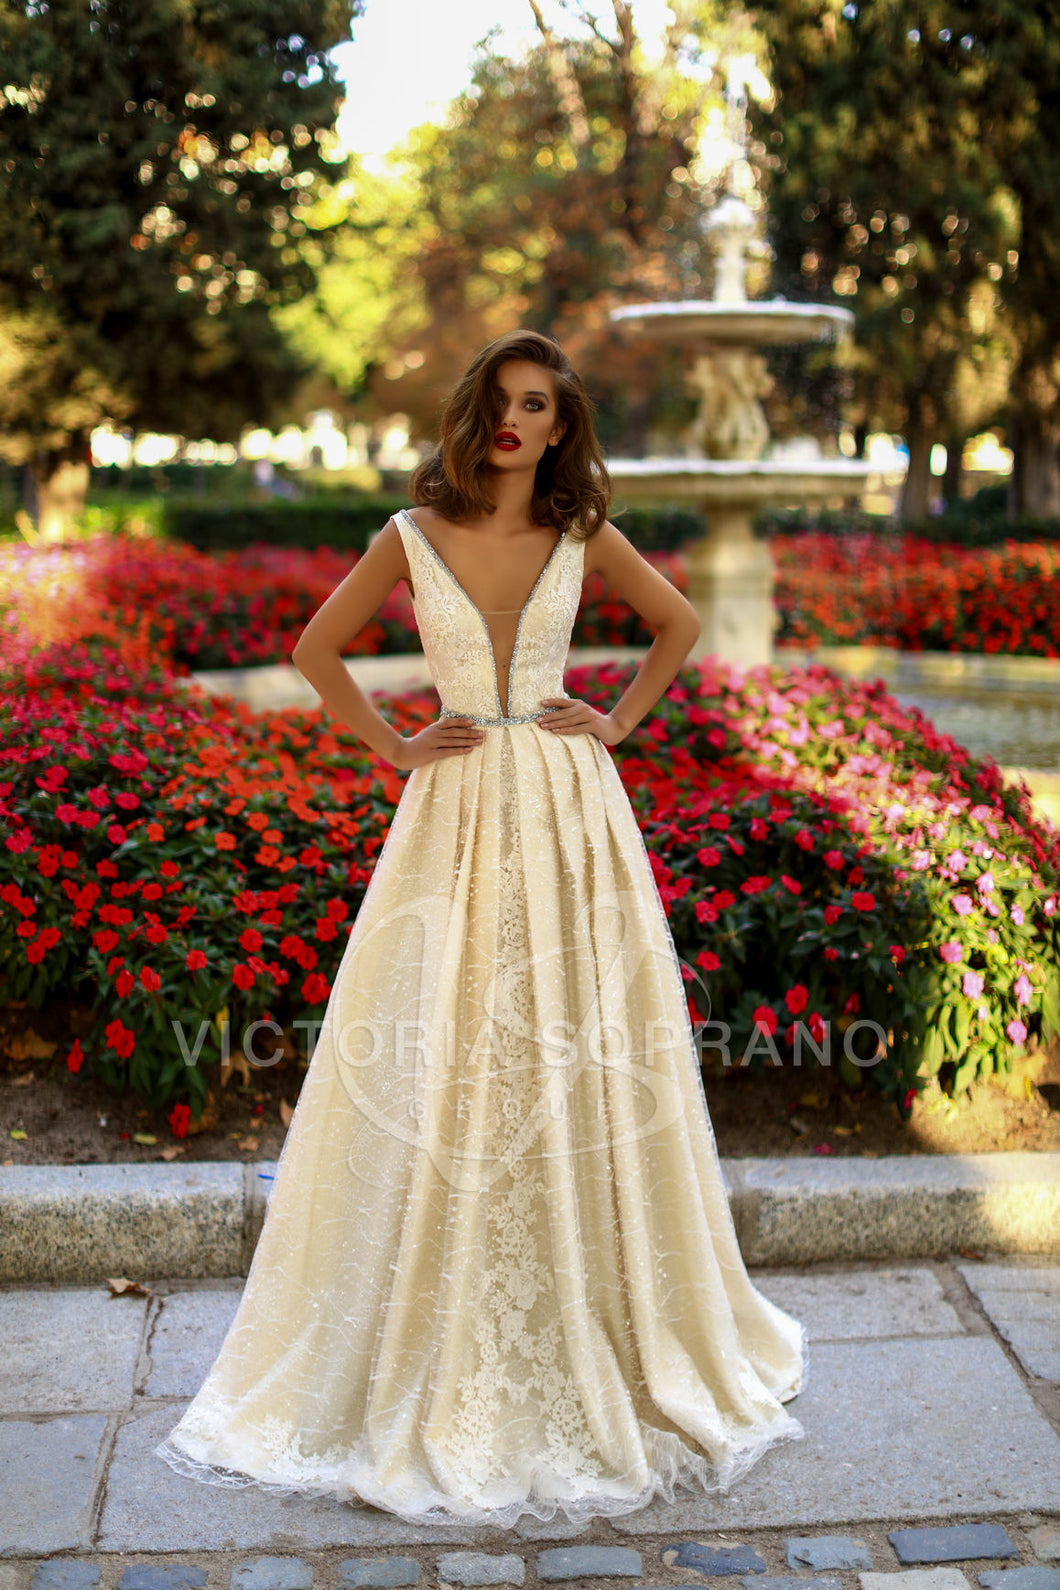 The One Collection 'Tiara' Victoria Soprano RTW 17318-419 Ready To Wear European Bridal Wedding Gown Designer Philippines